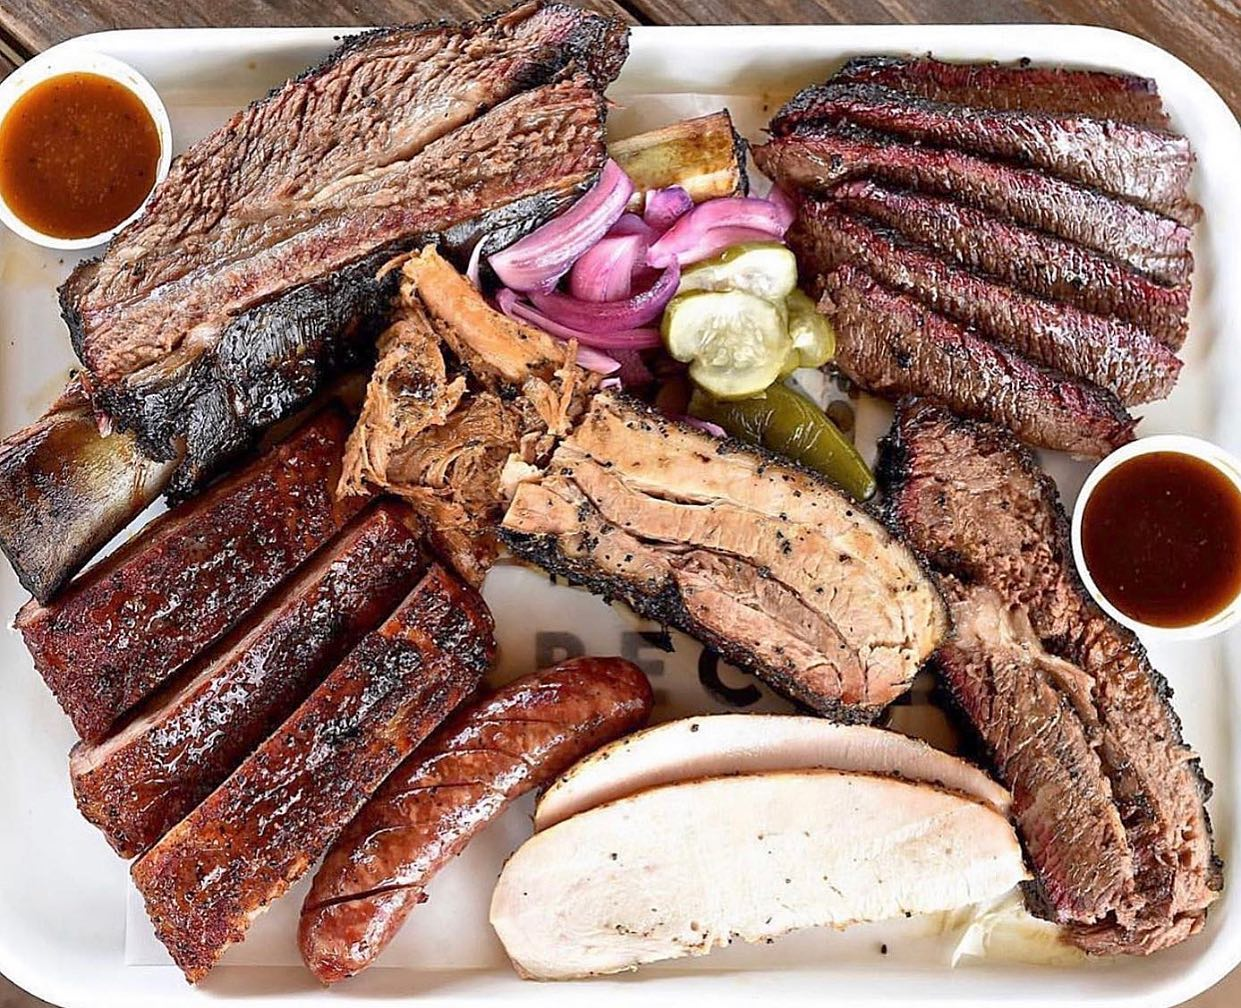 a plate of barbecue including ribs, sausage, pickles and red onions